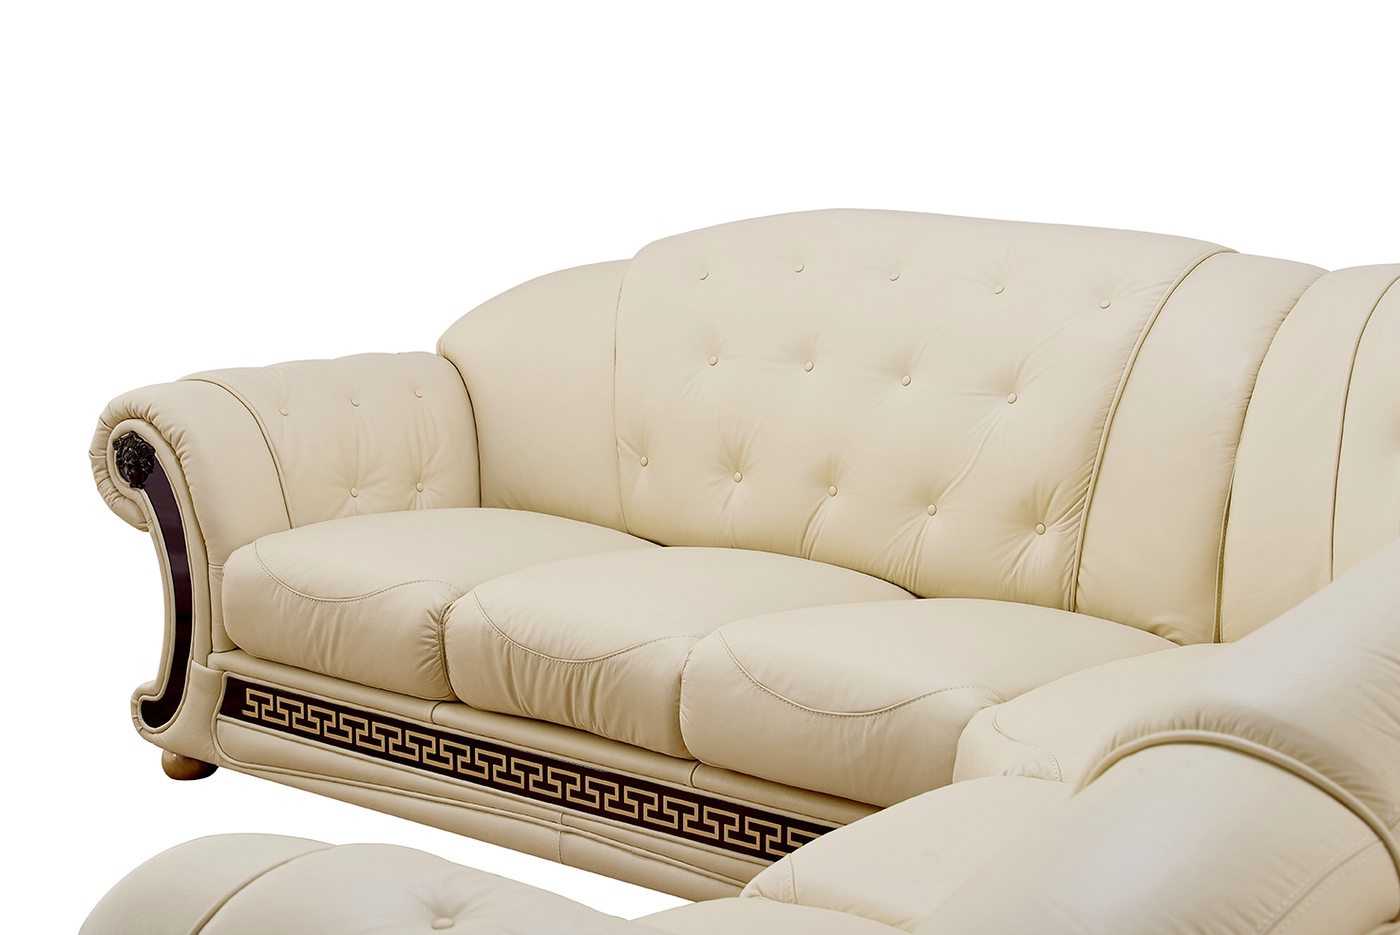 marco cream chaise sofa by factory outlet apt size leather sofas versace beige shop